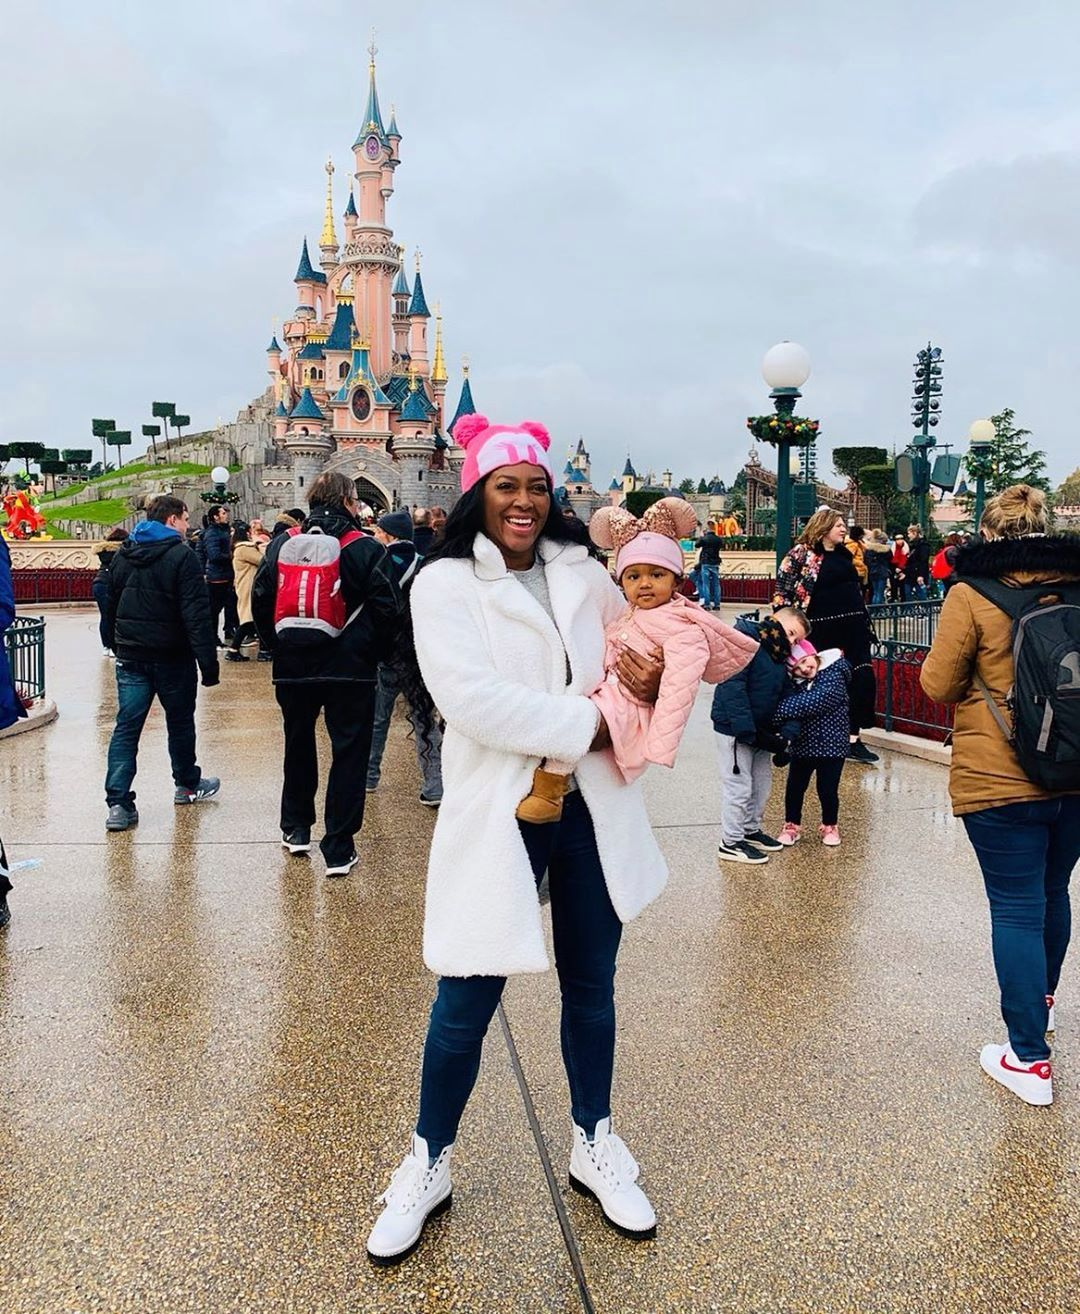 Kenya Moore Shares A Video With Baby Brooklyn Daly Walking And Dancing And Makes fans Day